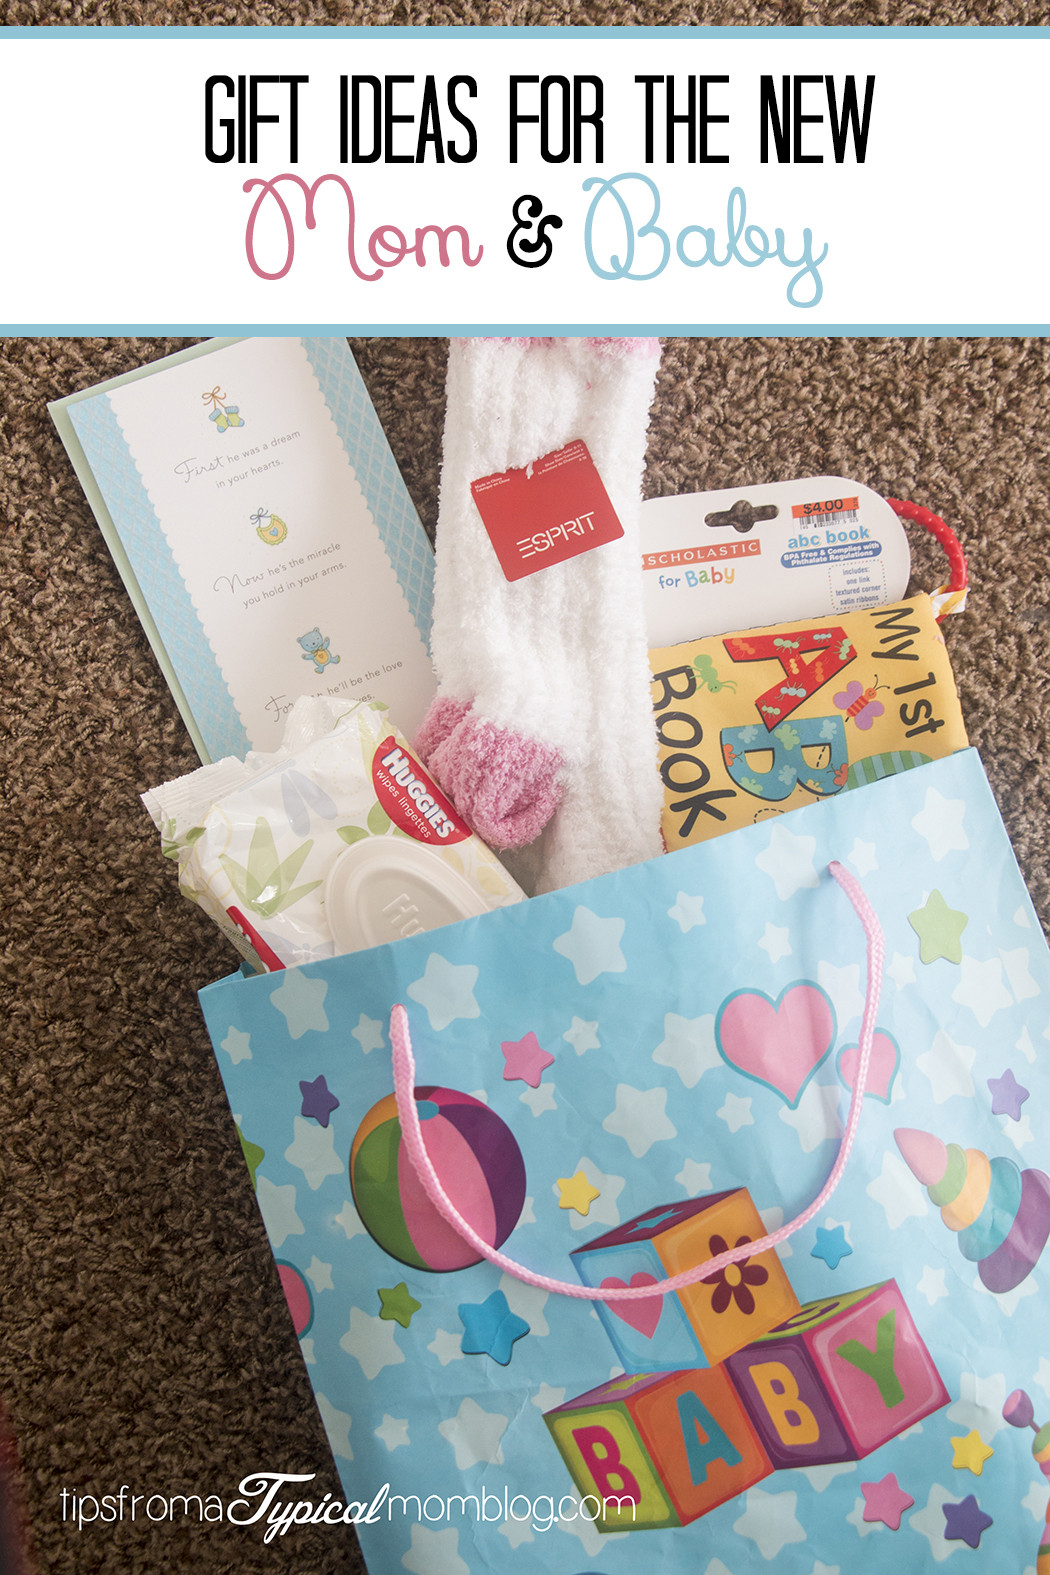 New Mother Gift Ideas  Gift Ideas for the New Mom and Baby Tips from a Typical Mom